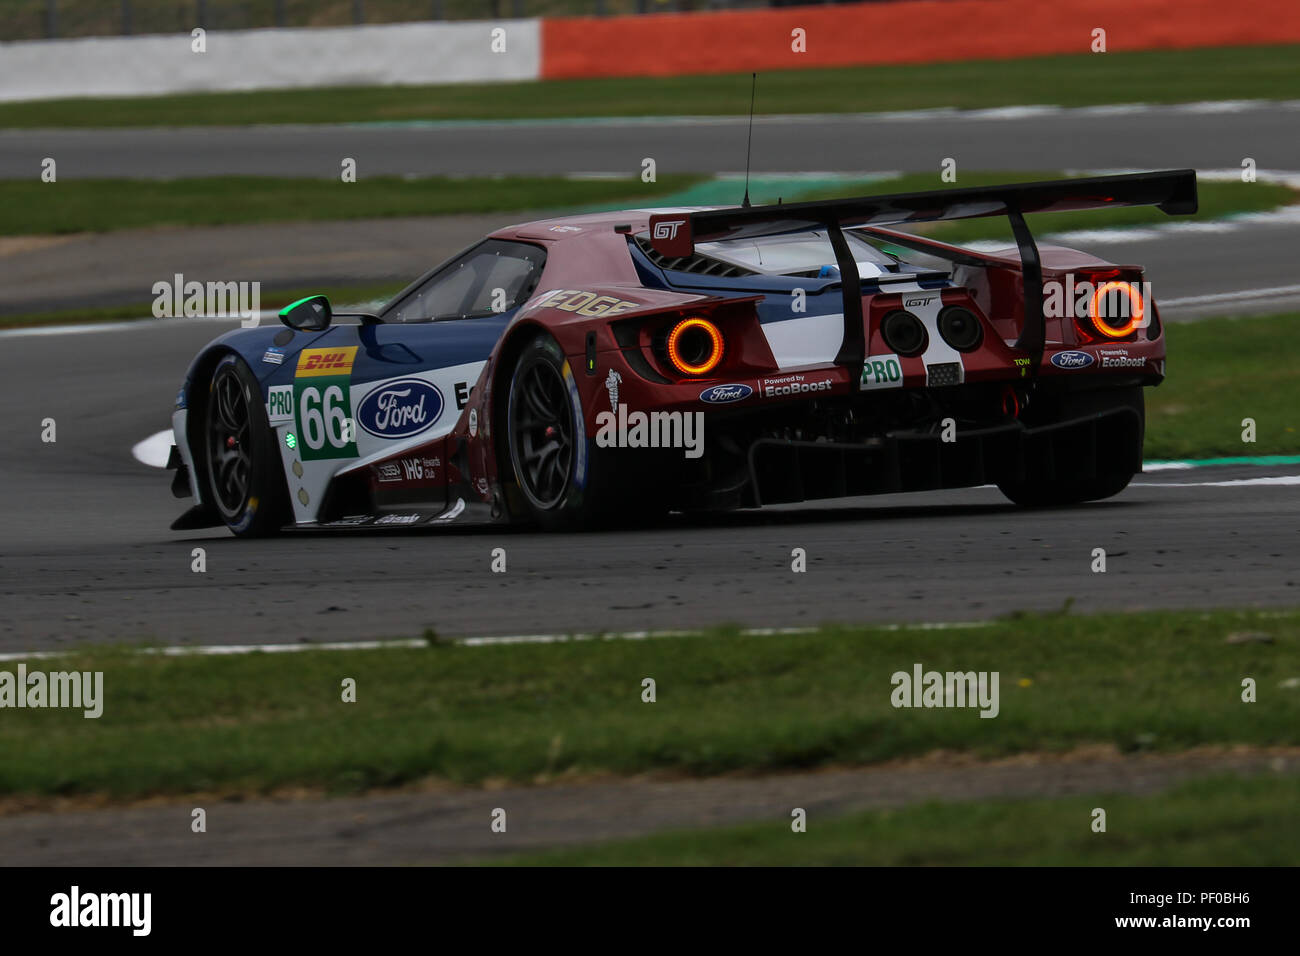 The  Ford Chip Ganassi Team Uk Ford Gt Of Stefan Mucke And Olivier Pla During Qualifying For The Fia World Endurance Championship  Hours Of Silverstone